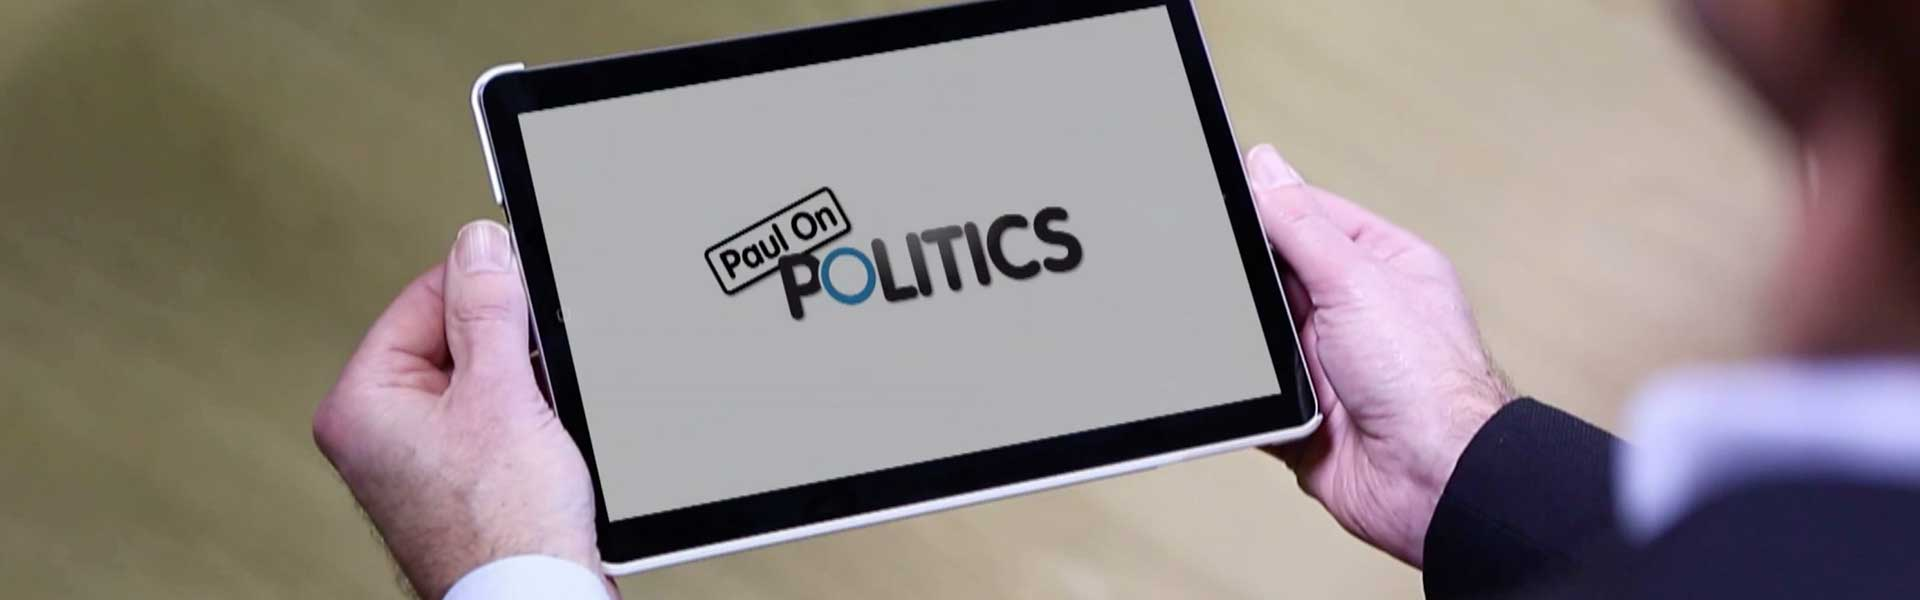 Paul on Politics story header image